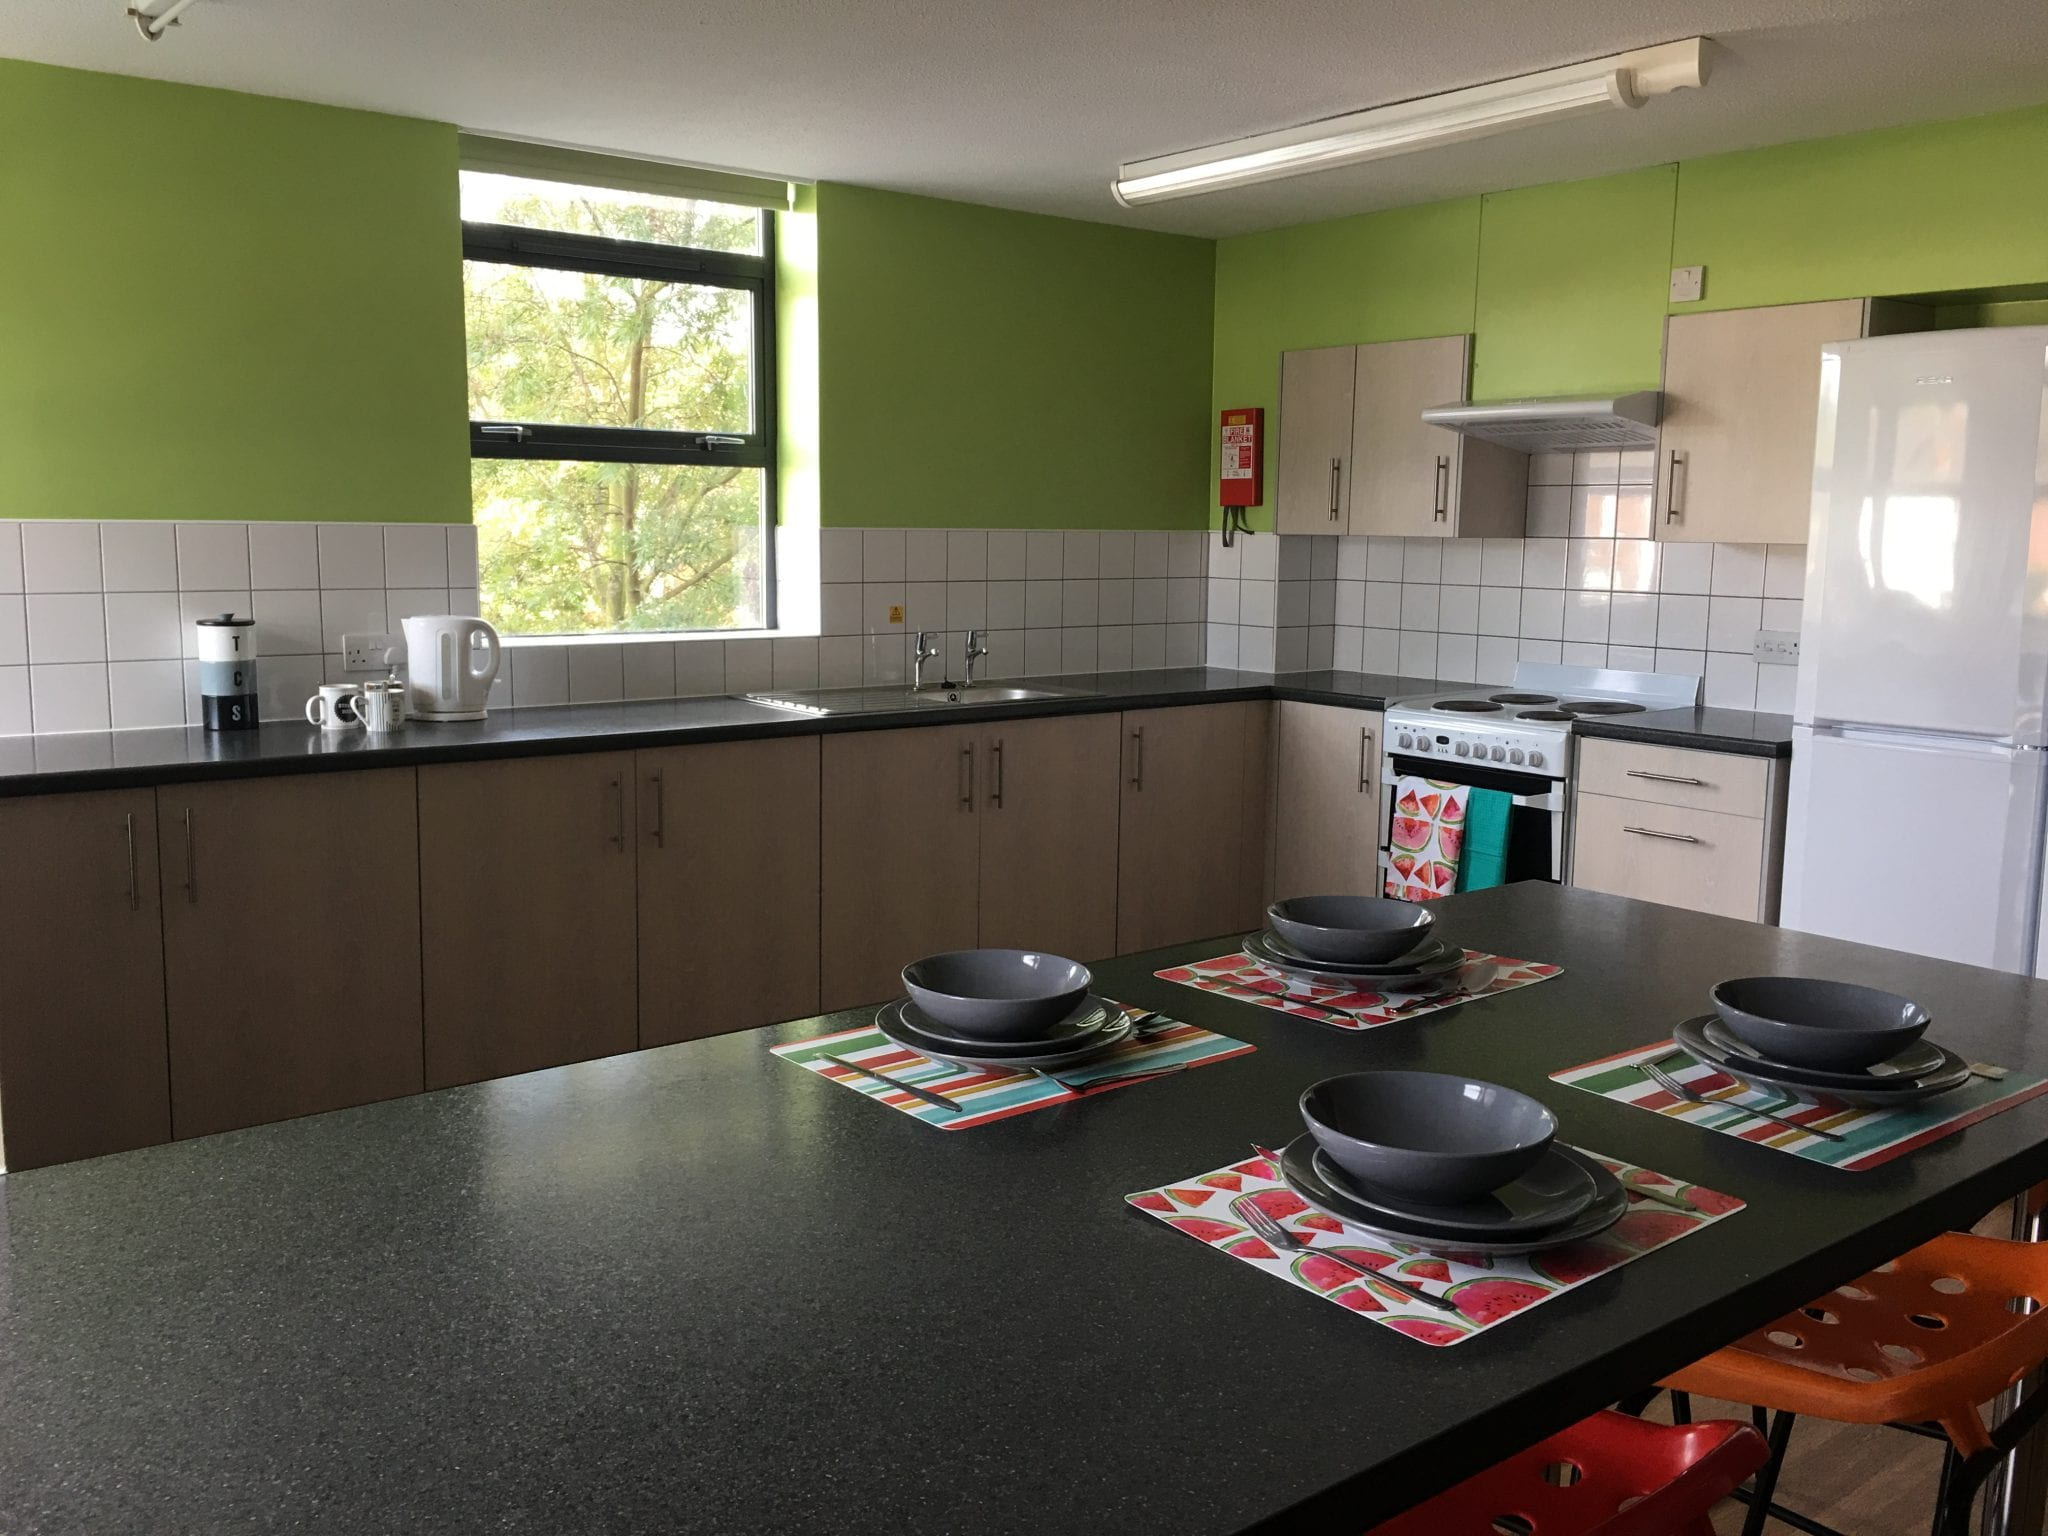 An example Lincoln Courts kitchen showing breakfast bar, kitchen worktops and cupboards.